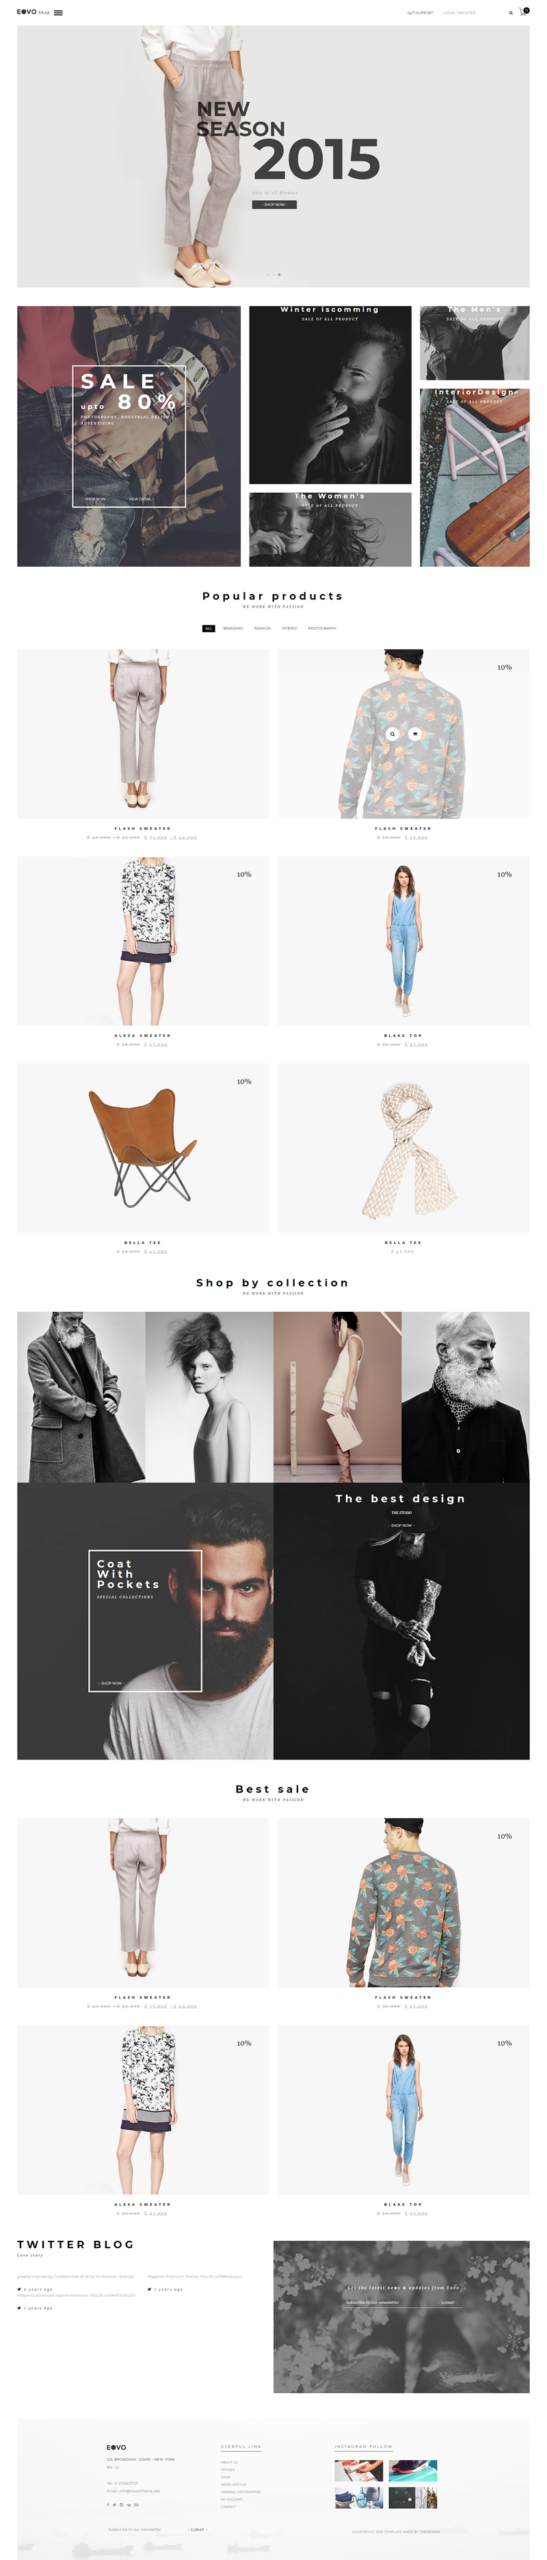 EOVO - Ecommerce Themes for WordPress